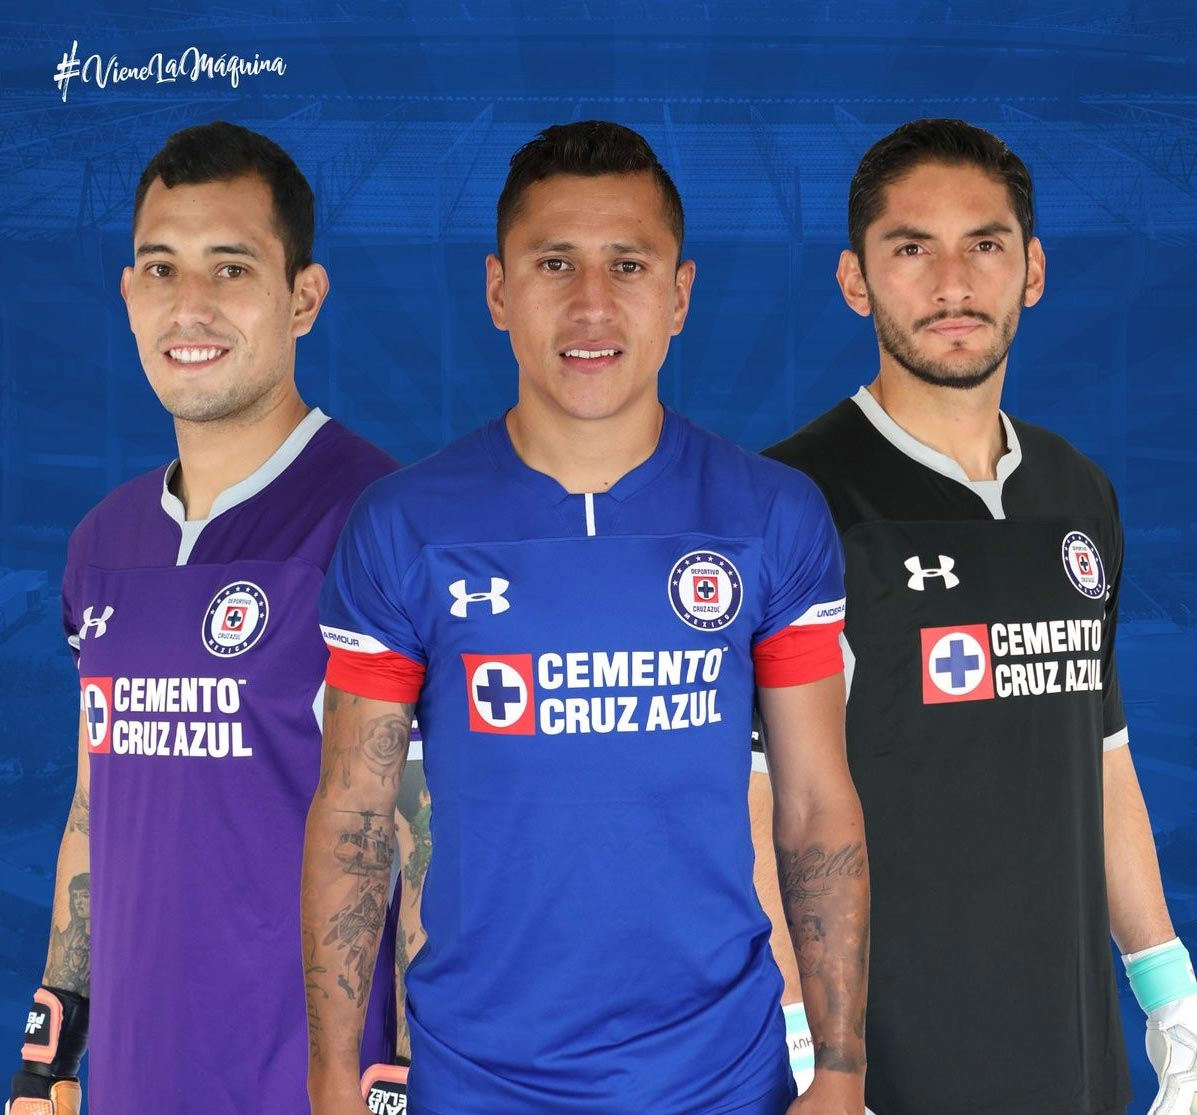 8f9899d0524 The Cruz Azul 2018-19 third shirt is also based on the template used for  home and away - it s red with a blue collar and more blue trim on the  sleeves.